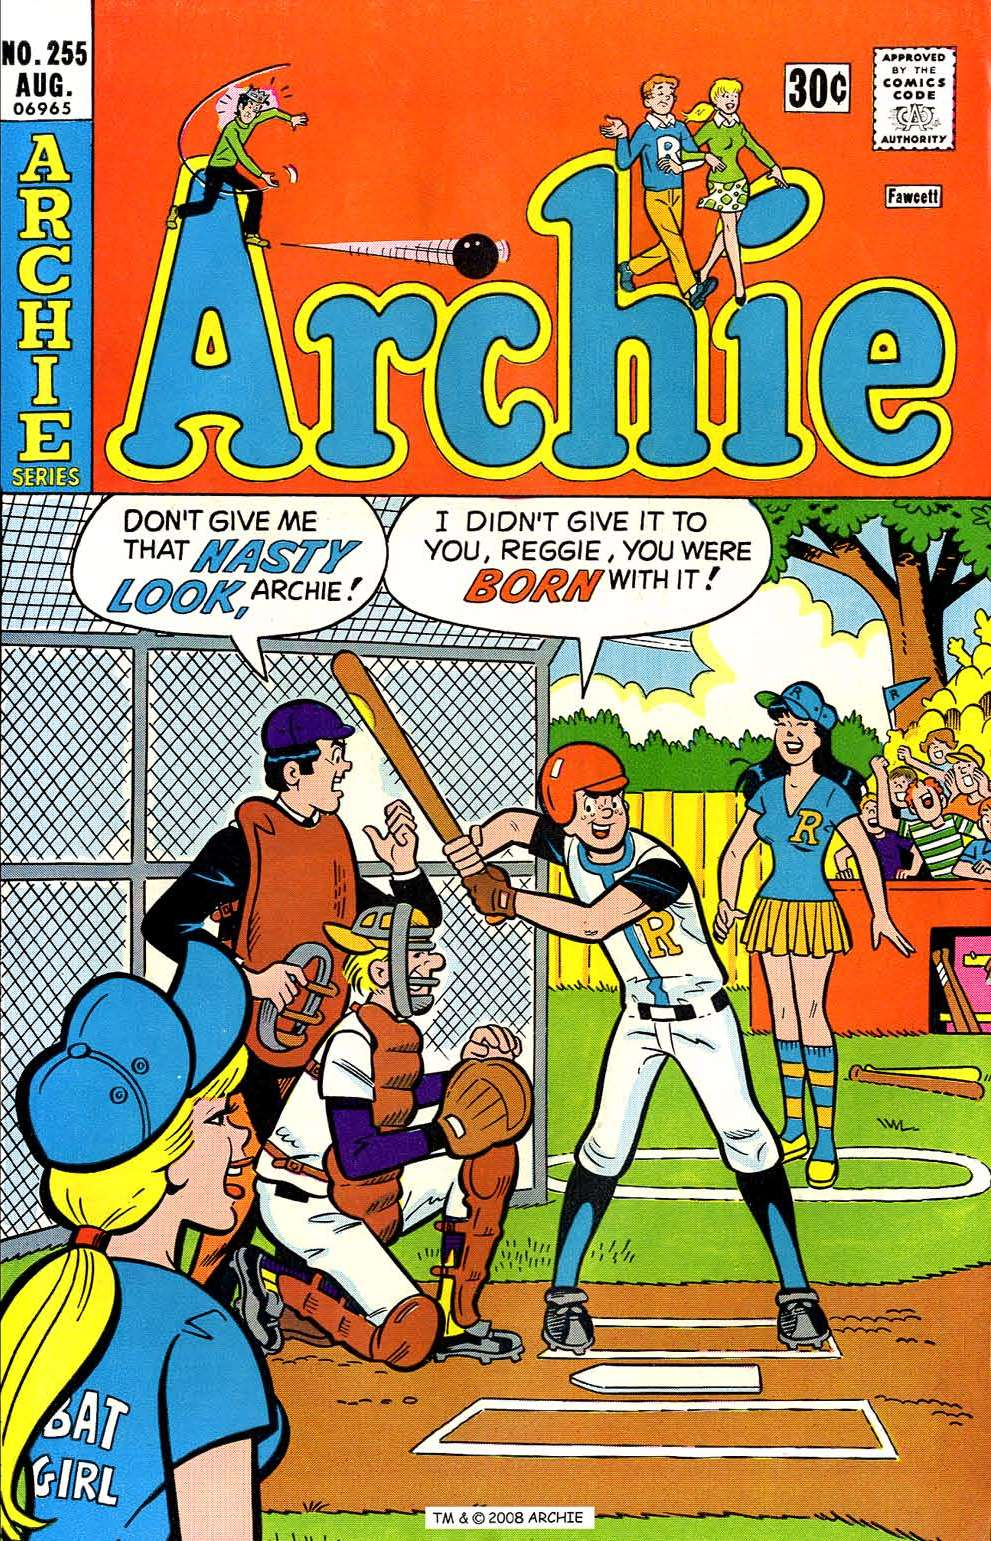 Read online Archie (1960) comic -  Issue #255 - 1